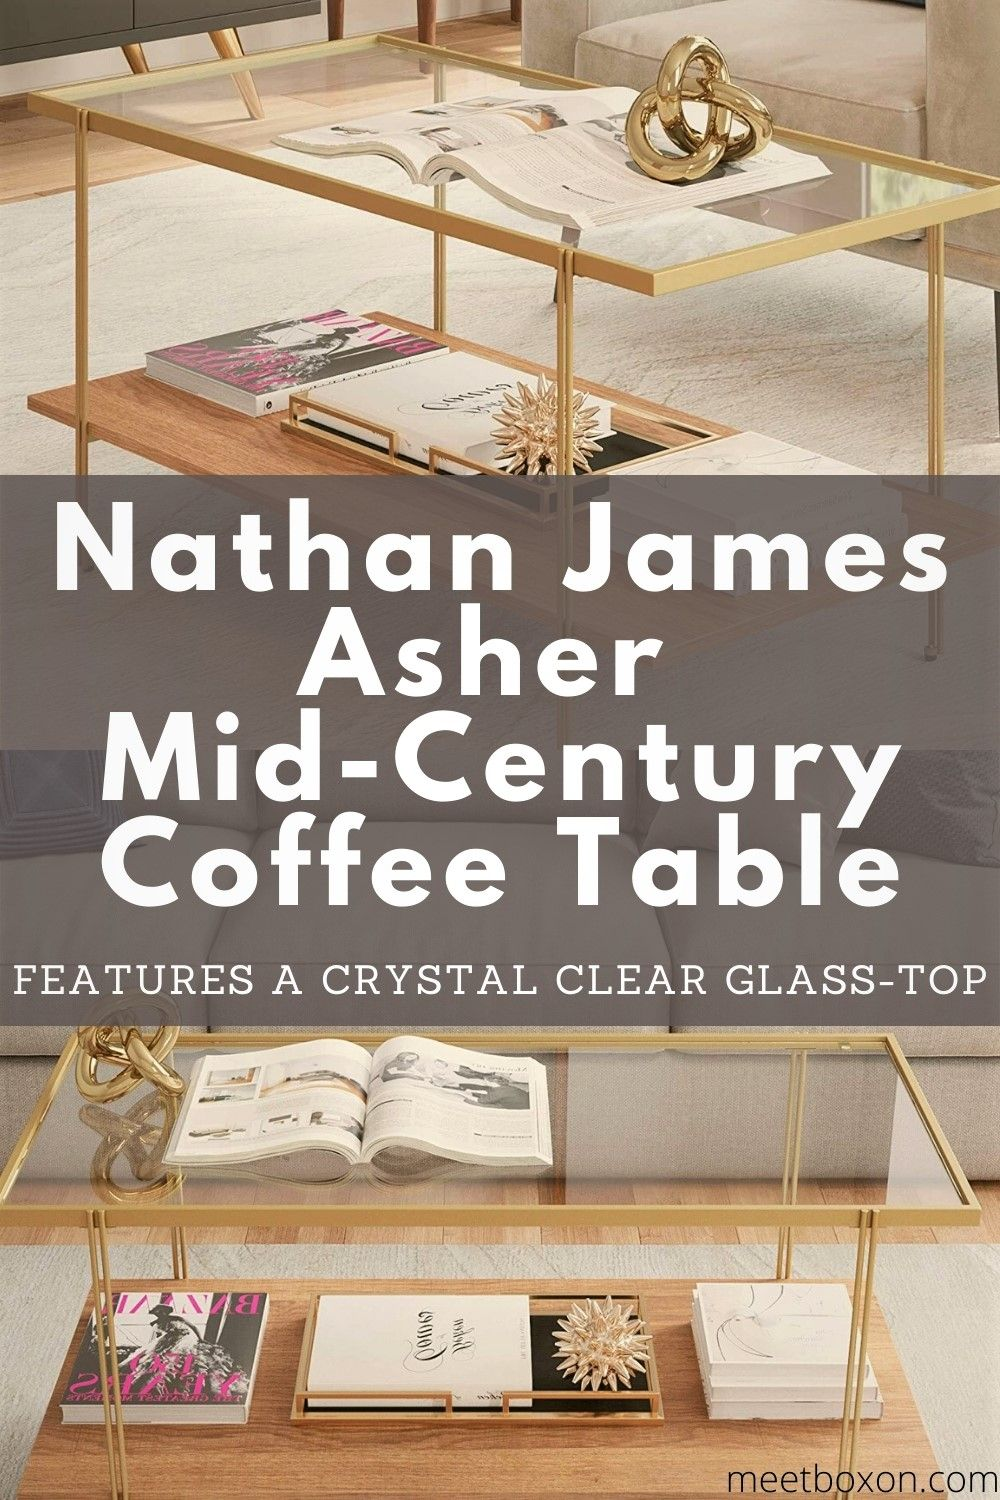 Nathan James Asher Mid Century Rectangle Coffee Table Coffee Table Rectangle Gold Coffee Table Mid Century Coffee Table [ jpg ]